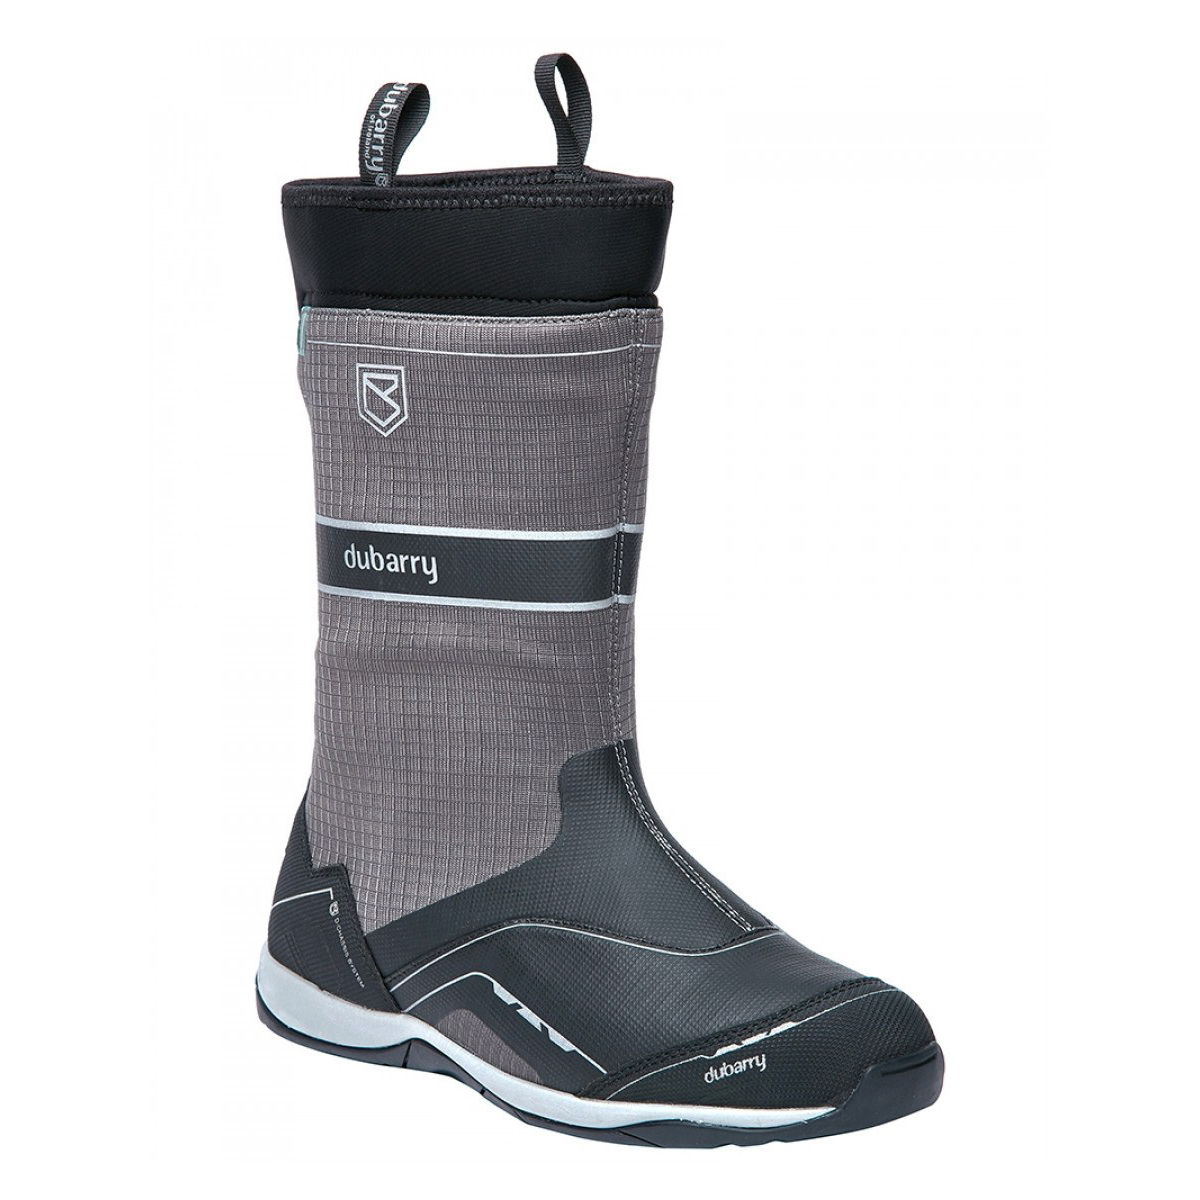 DUBARRY FASTNET LIGHTWEIGHT SAILING BOOT (3750)